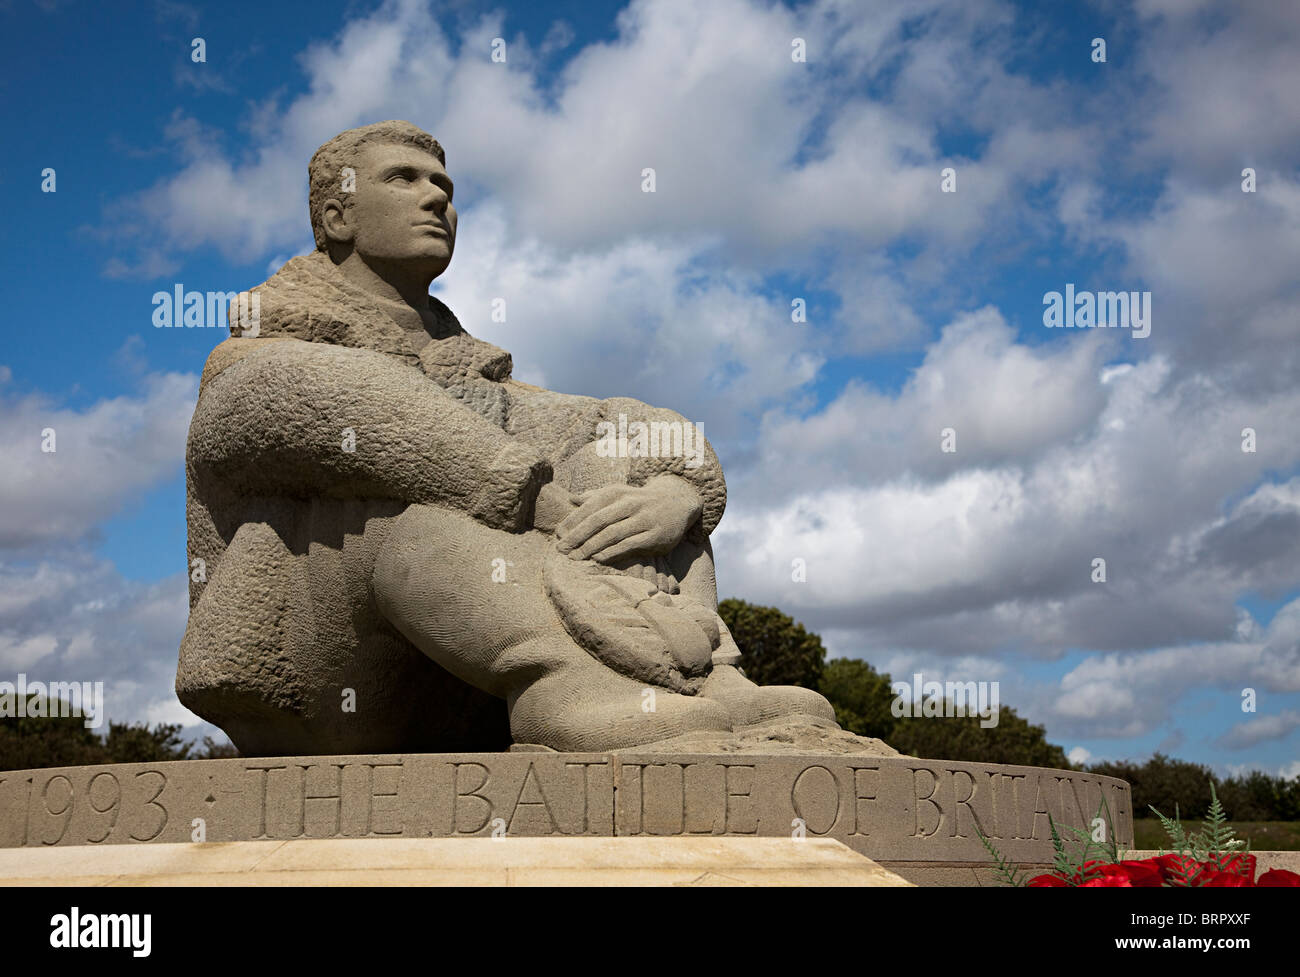 Statue of young airman at The Battle of Britain Memorial Capel-le-Ferne Dover England UK - Stock Image